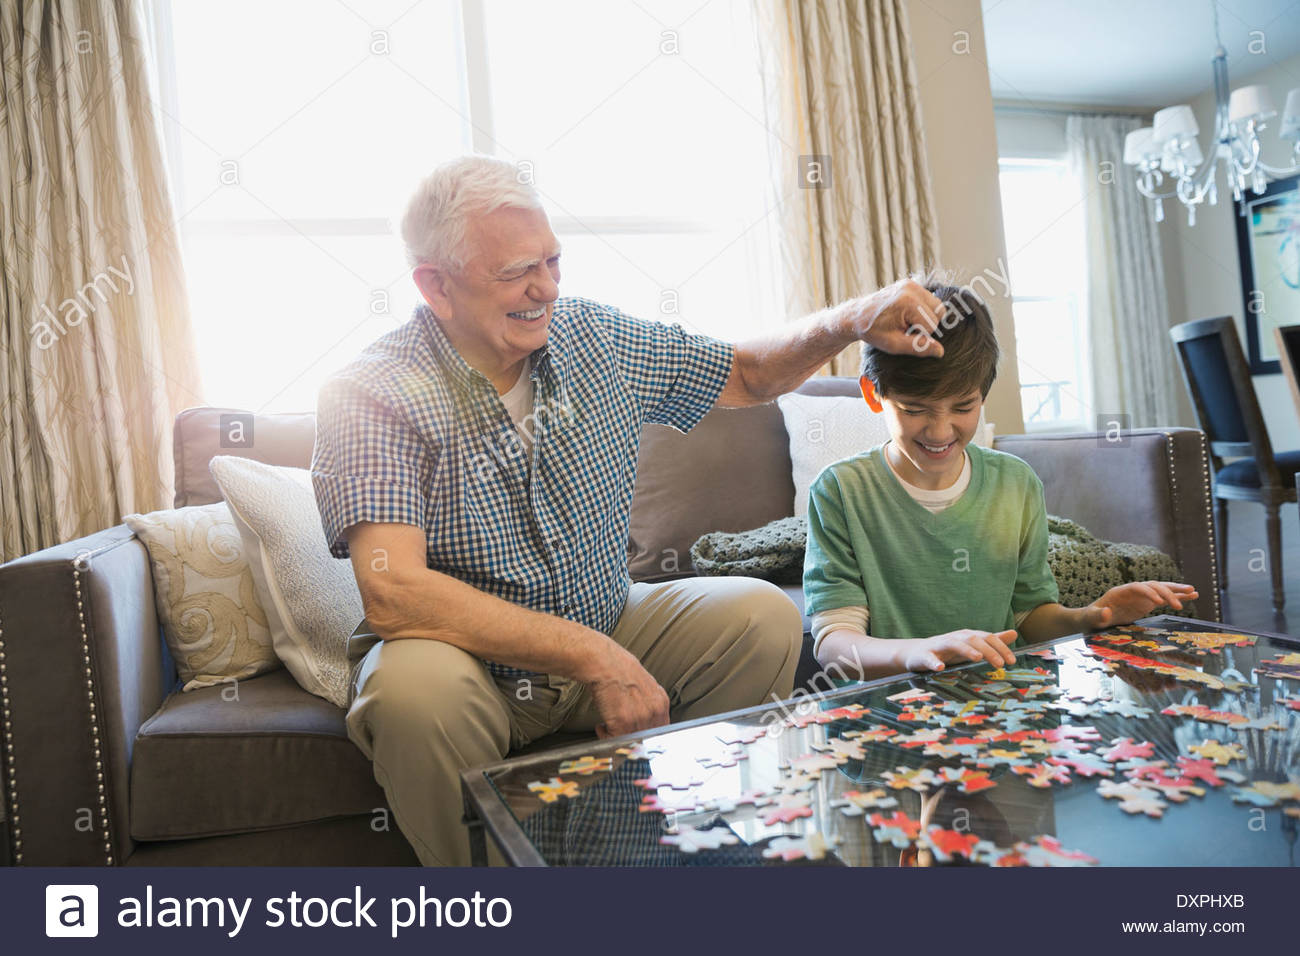 Playful grandfather and grandson solving puzzle at home - Stock Image